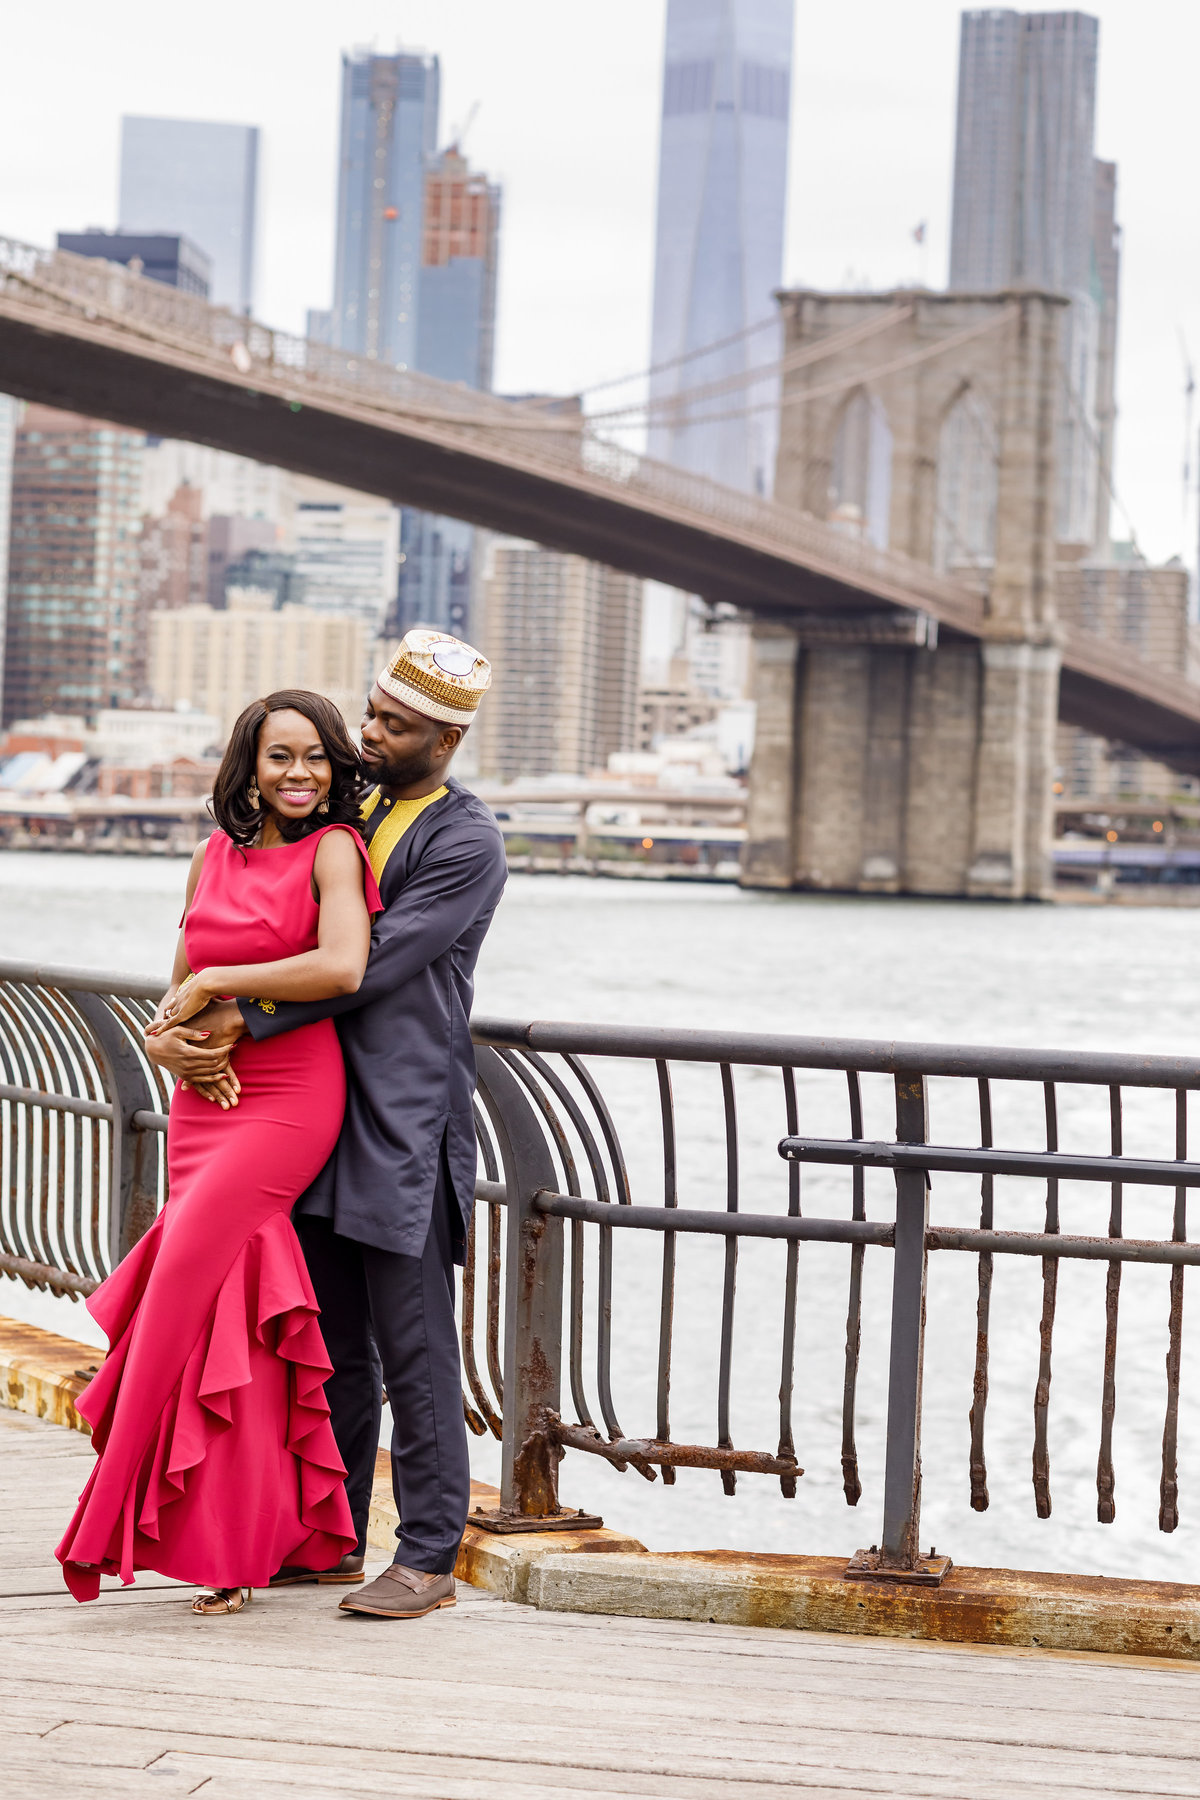 Brooklyn_Bridge_New_York_Engagement_Session_Amy_Anaiz_025